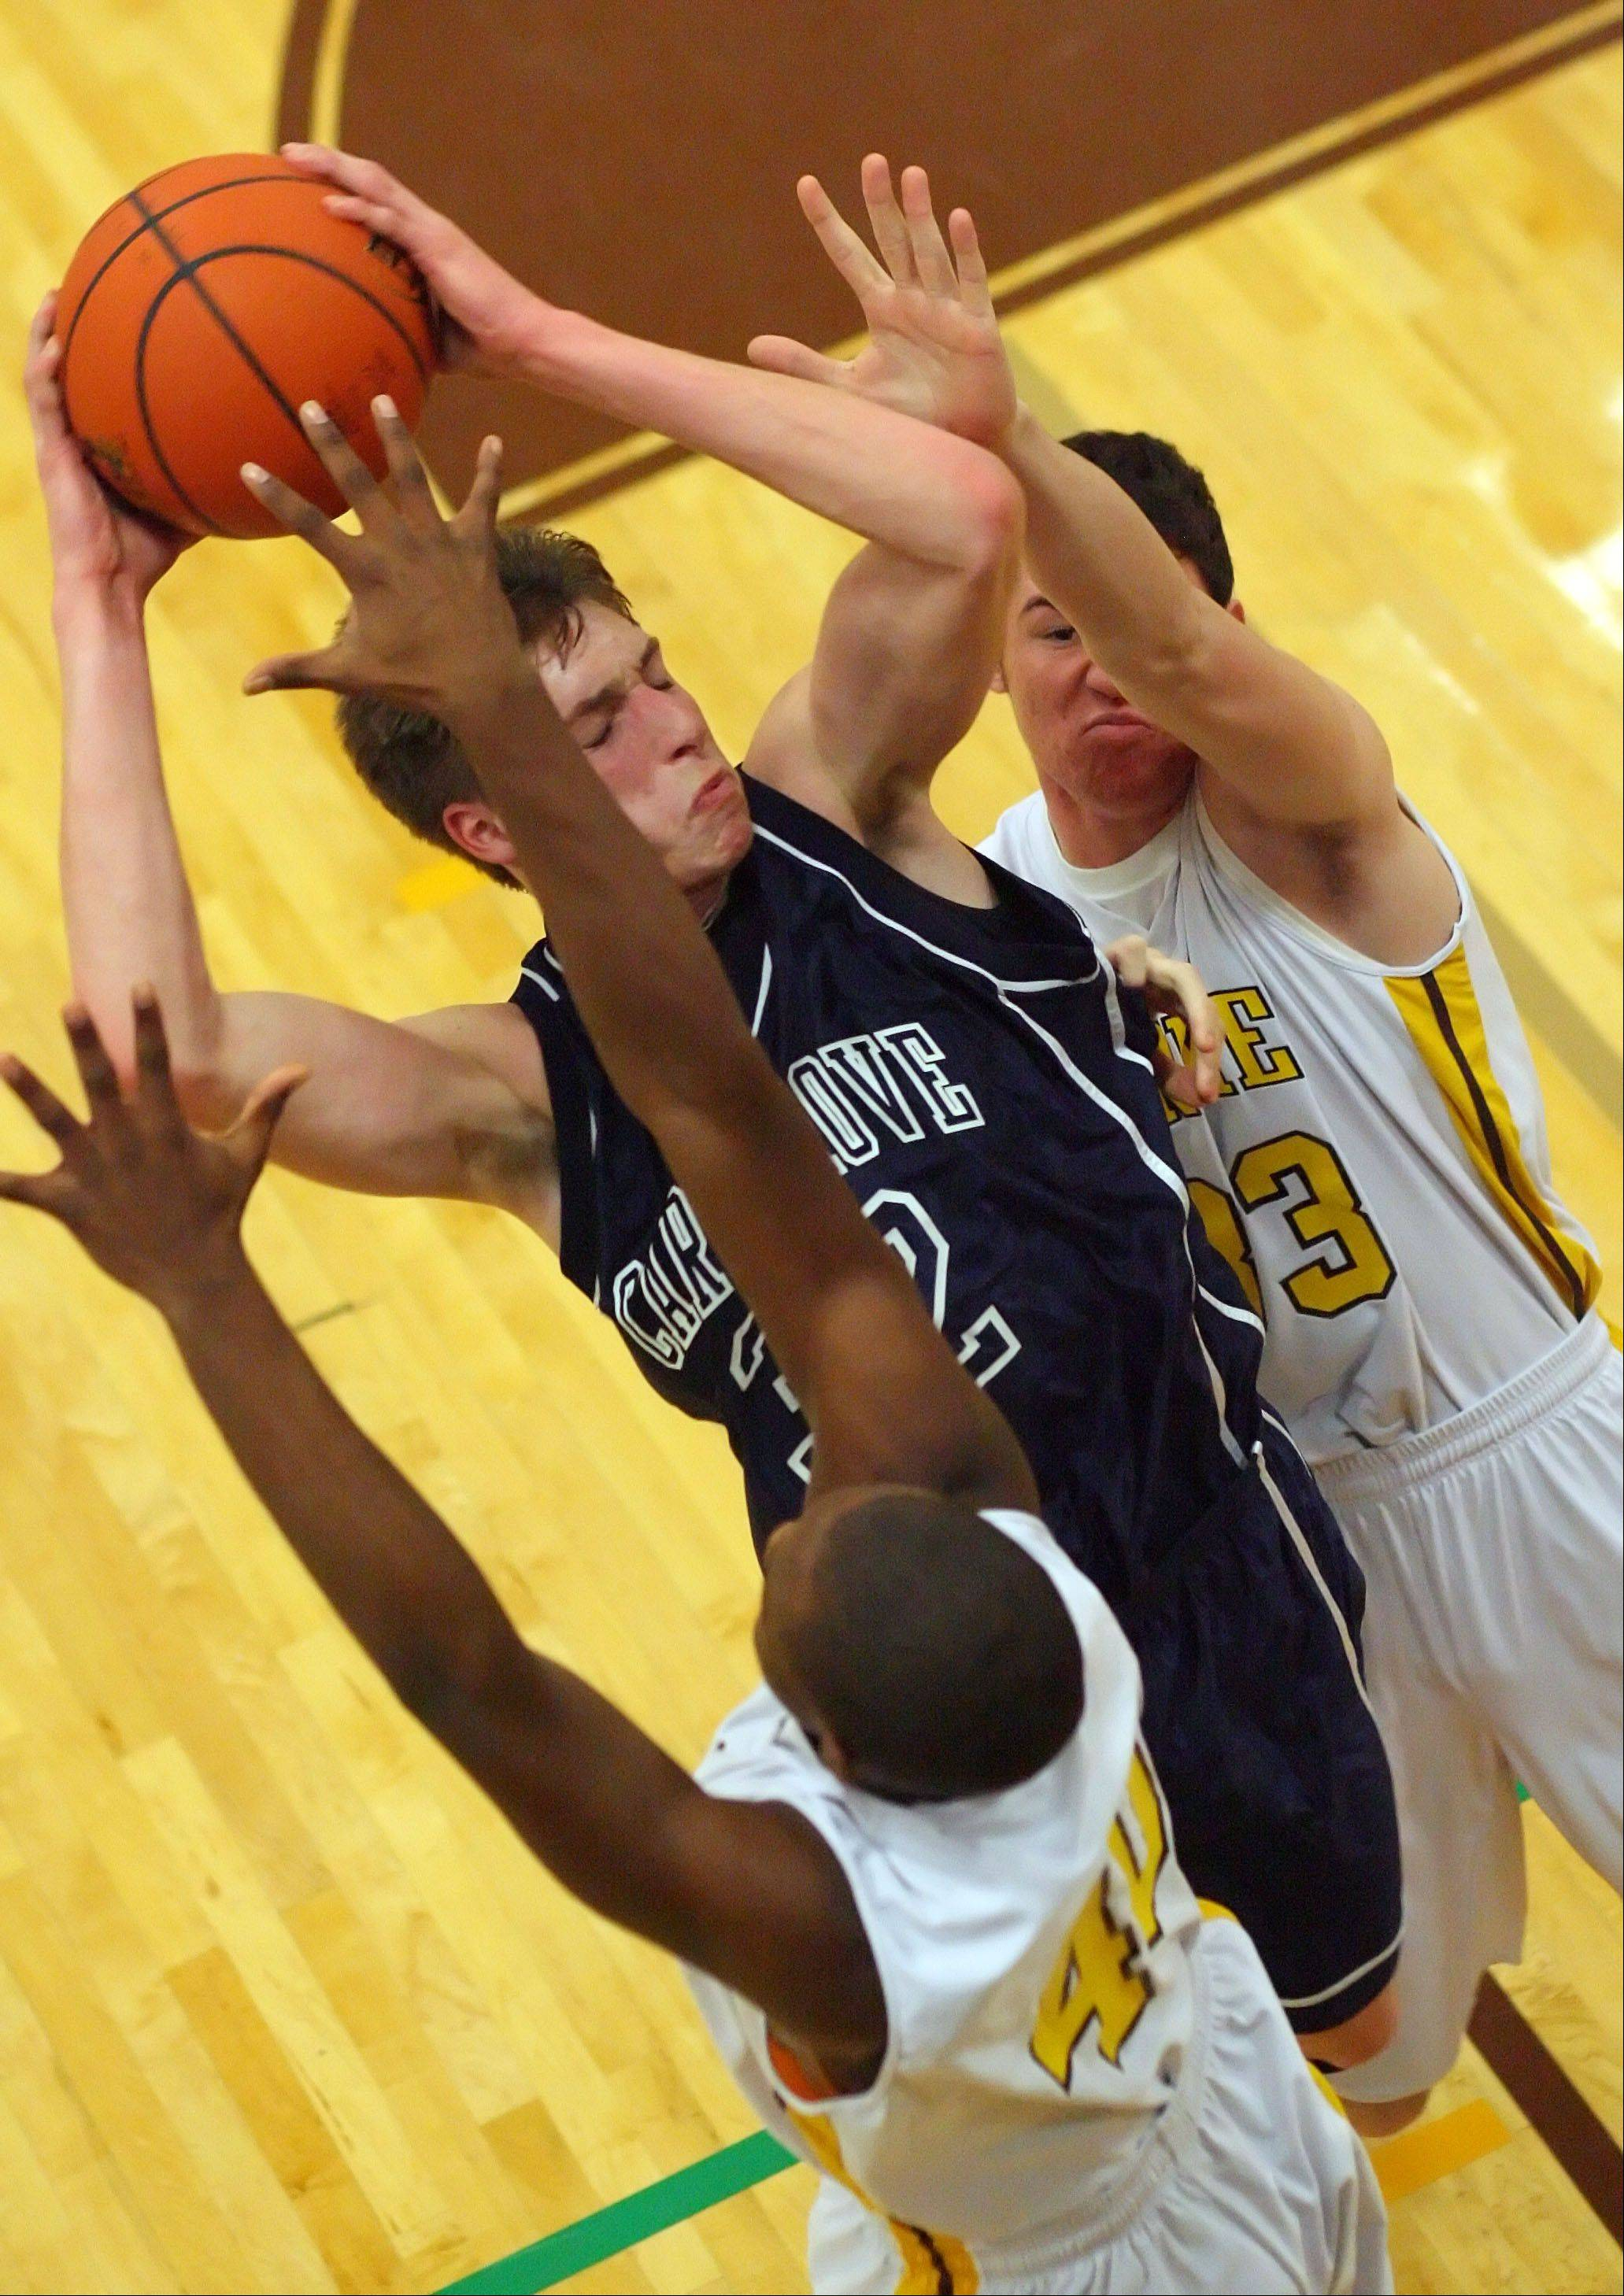 Cary-Grove's Dean Lee, center, drives on Carmel's Chris Duff, left, and Matt Kelly on Wednesday night at Carmel.